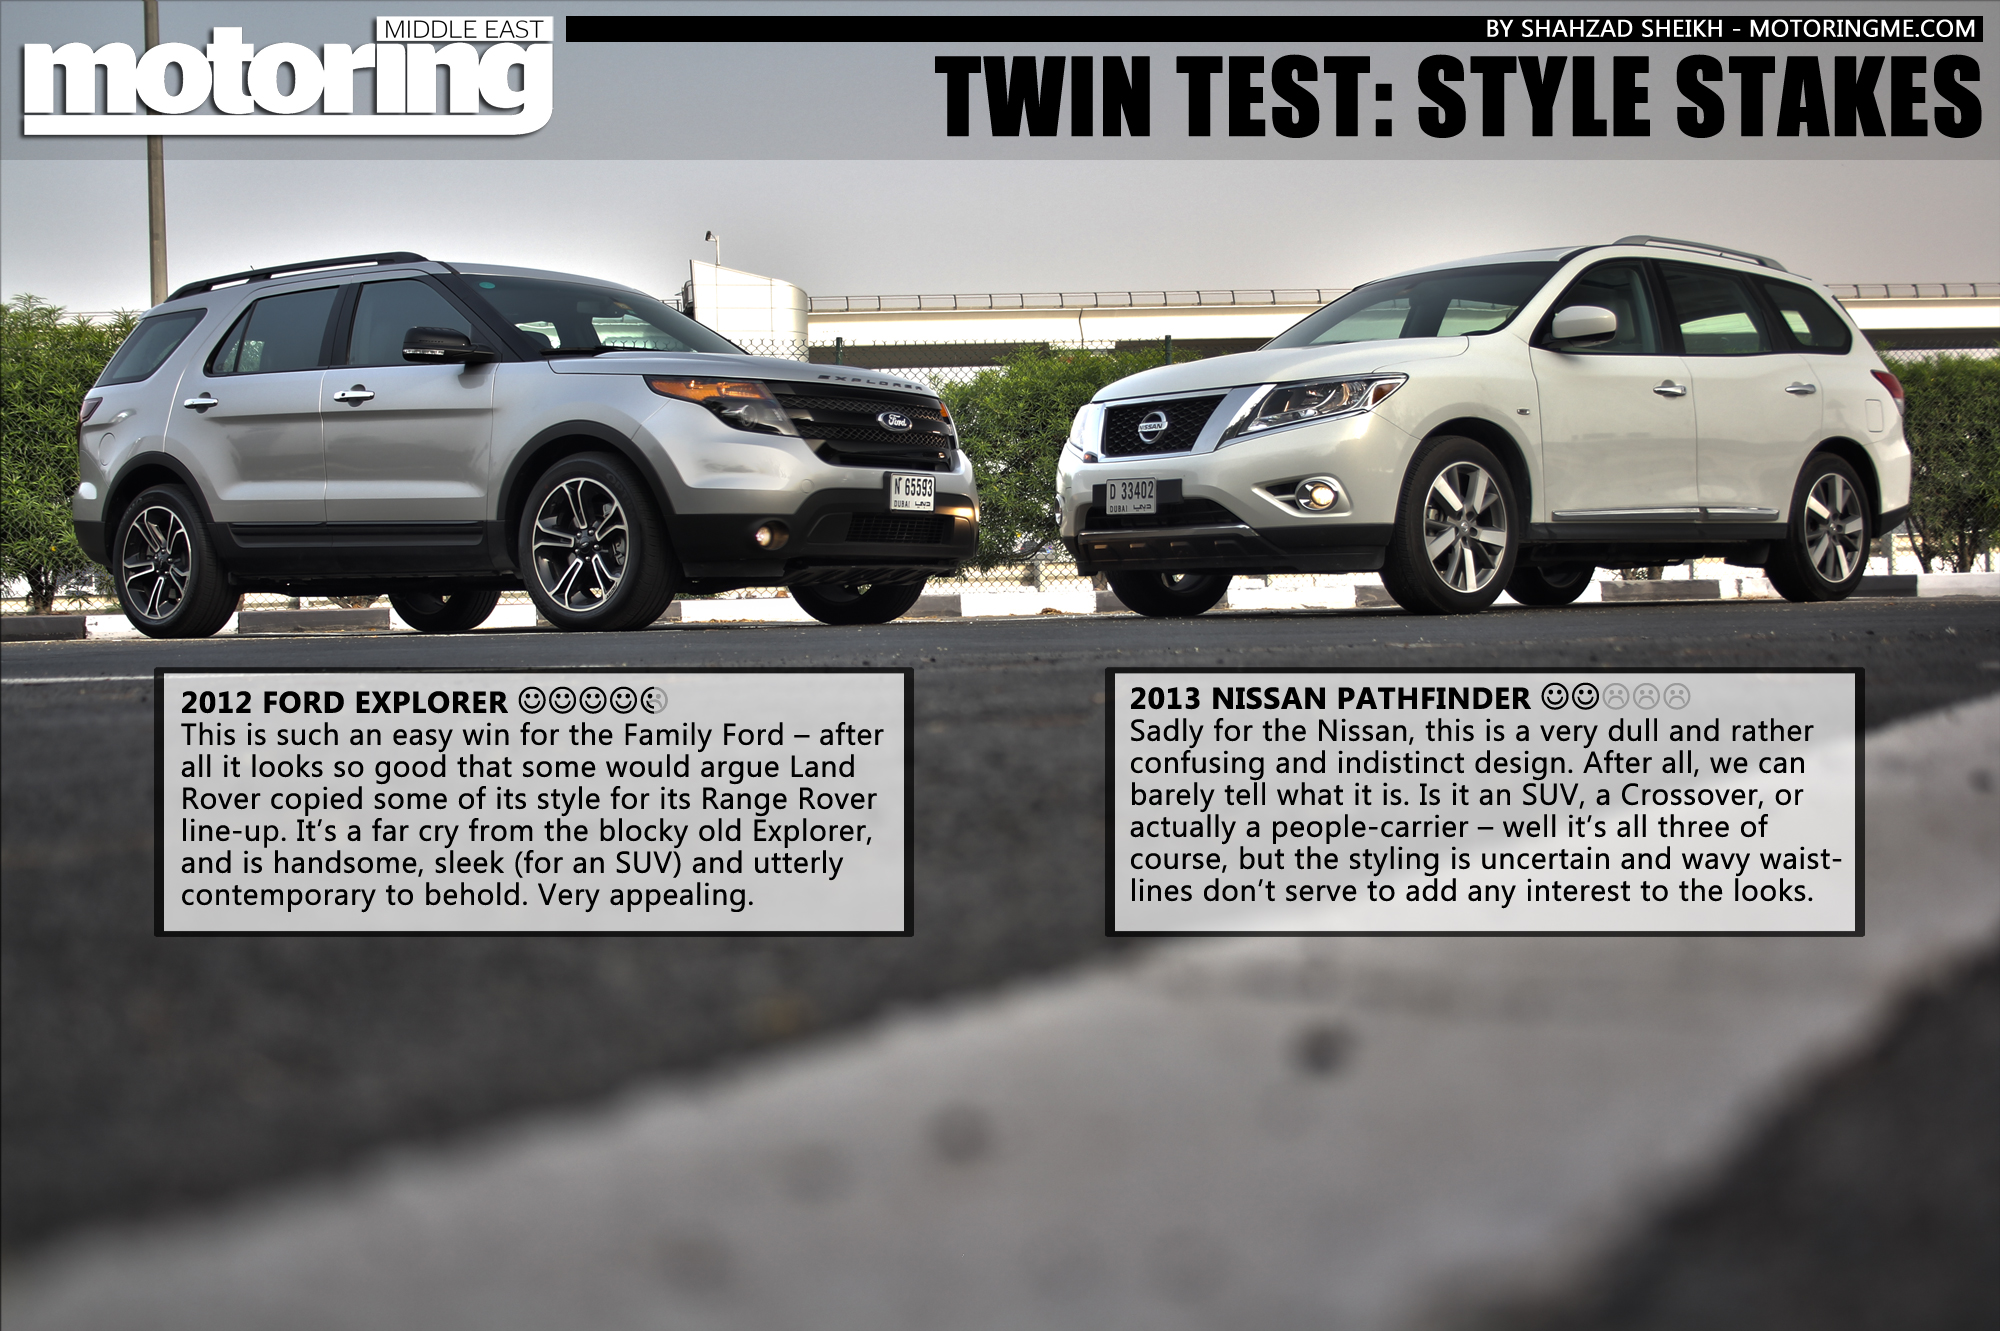 Nissan pathfinder vs ford explorer